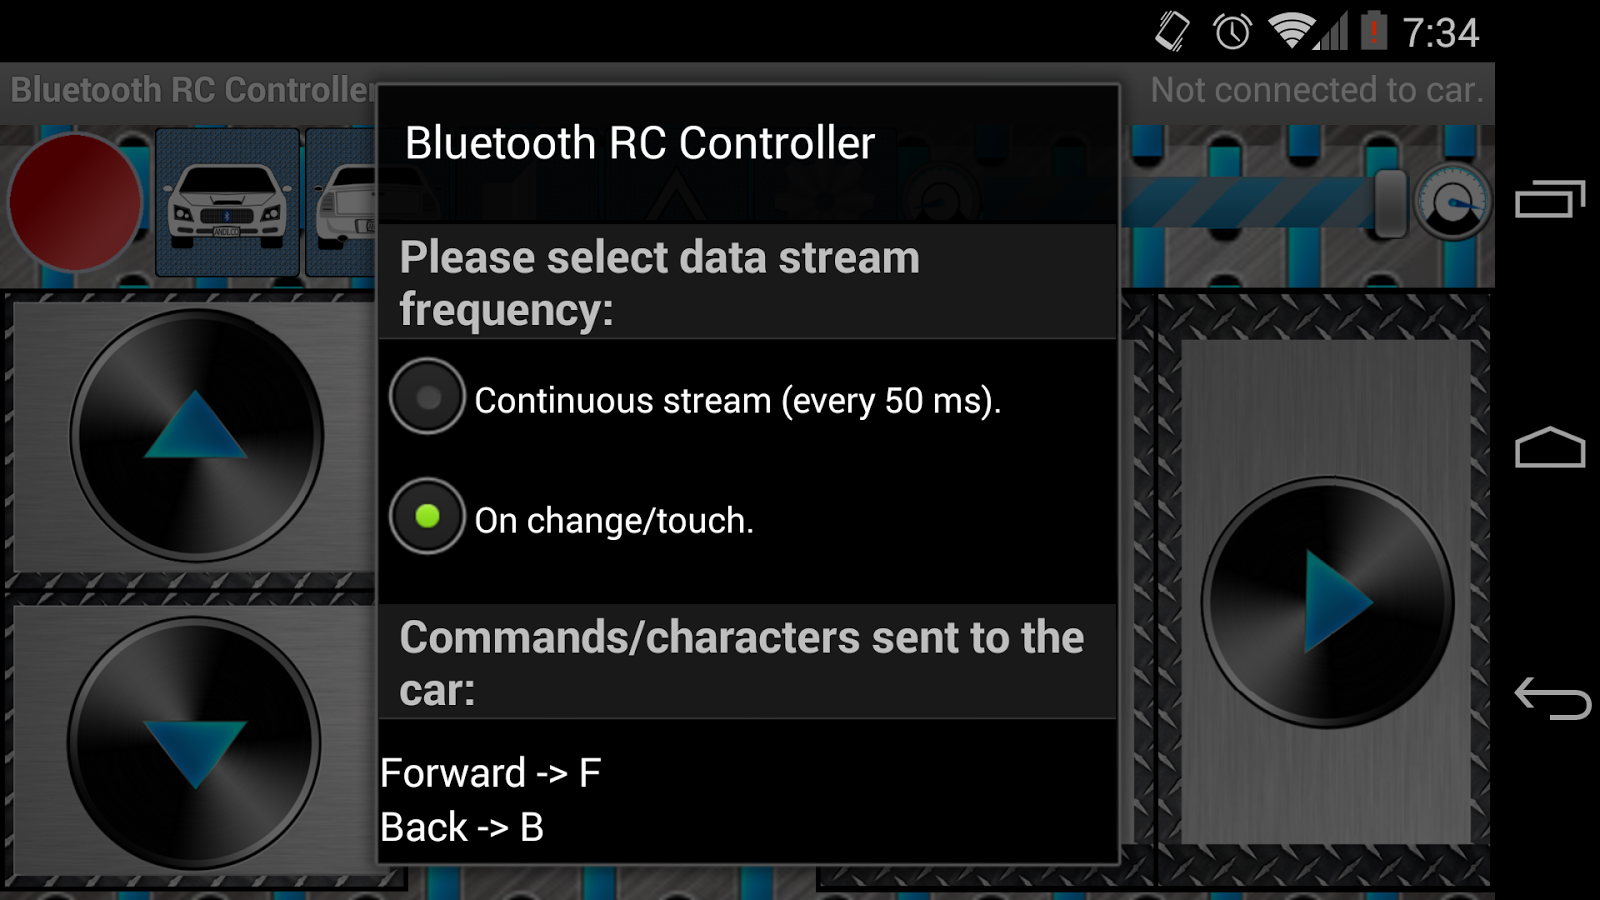 Arduino Bluetooth Rc Car 1 7 Apk Download Android